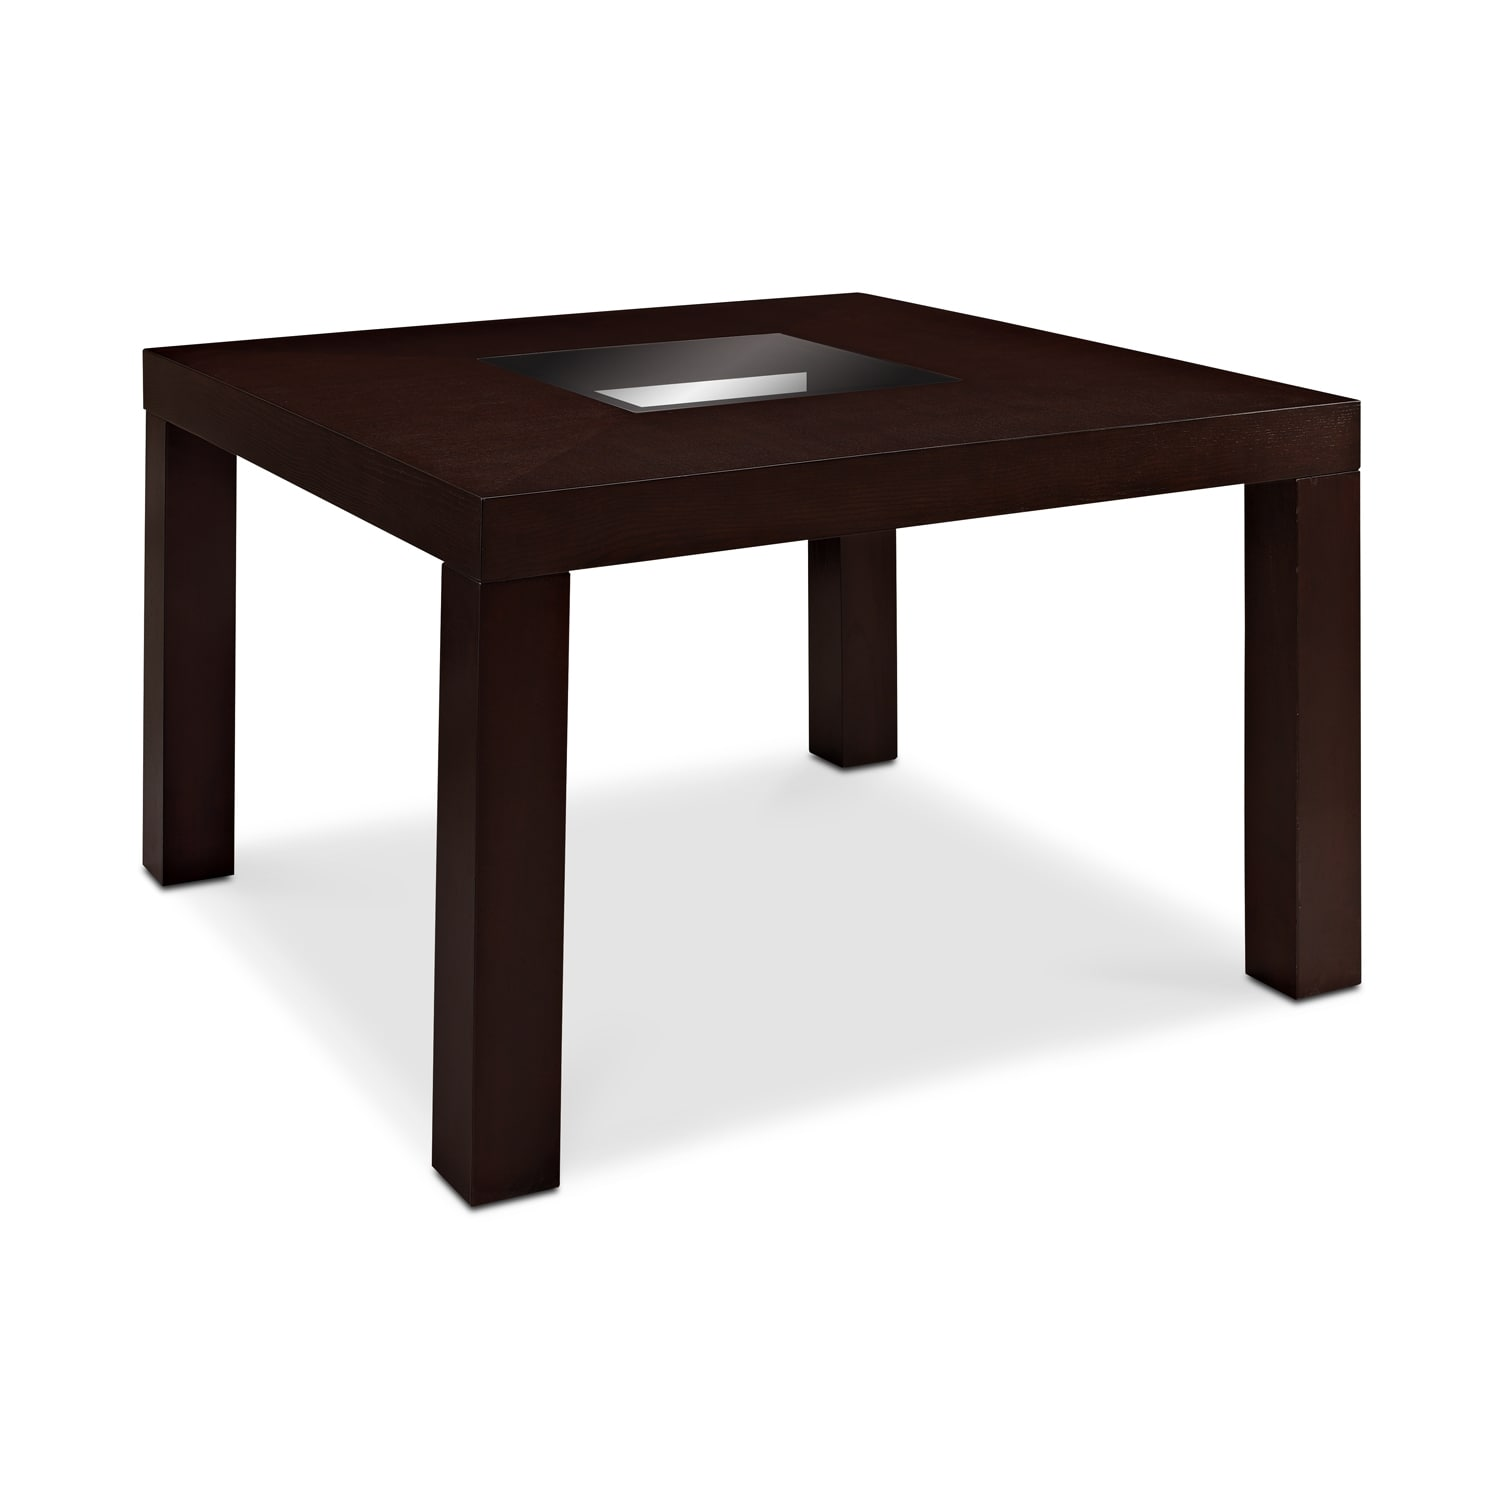 "[Tango 50"" Dining Table]"